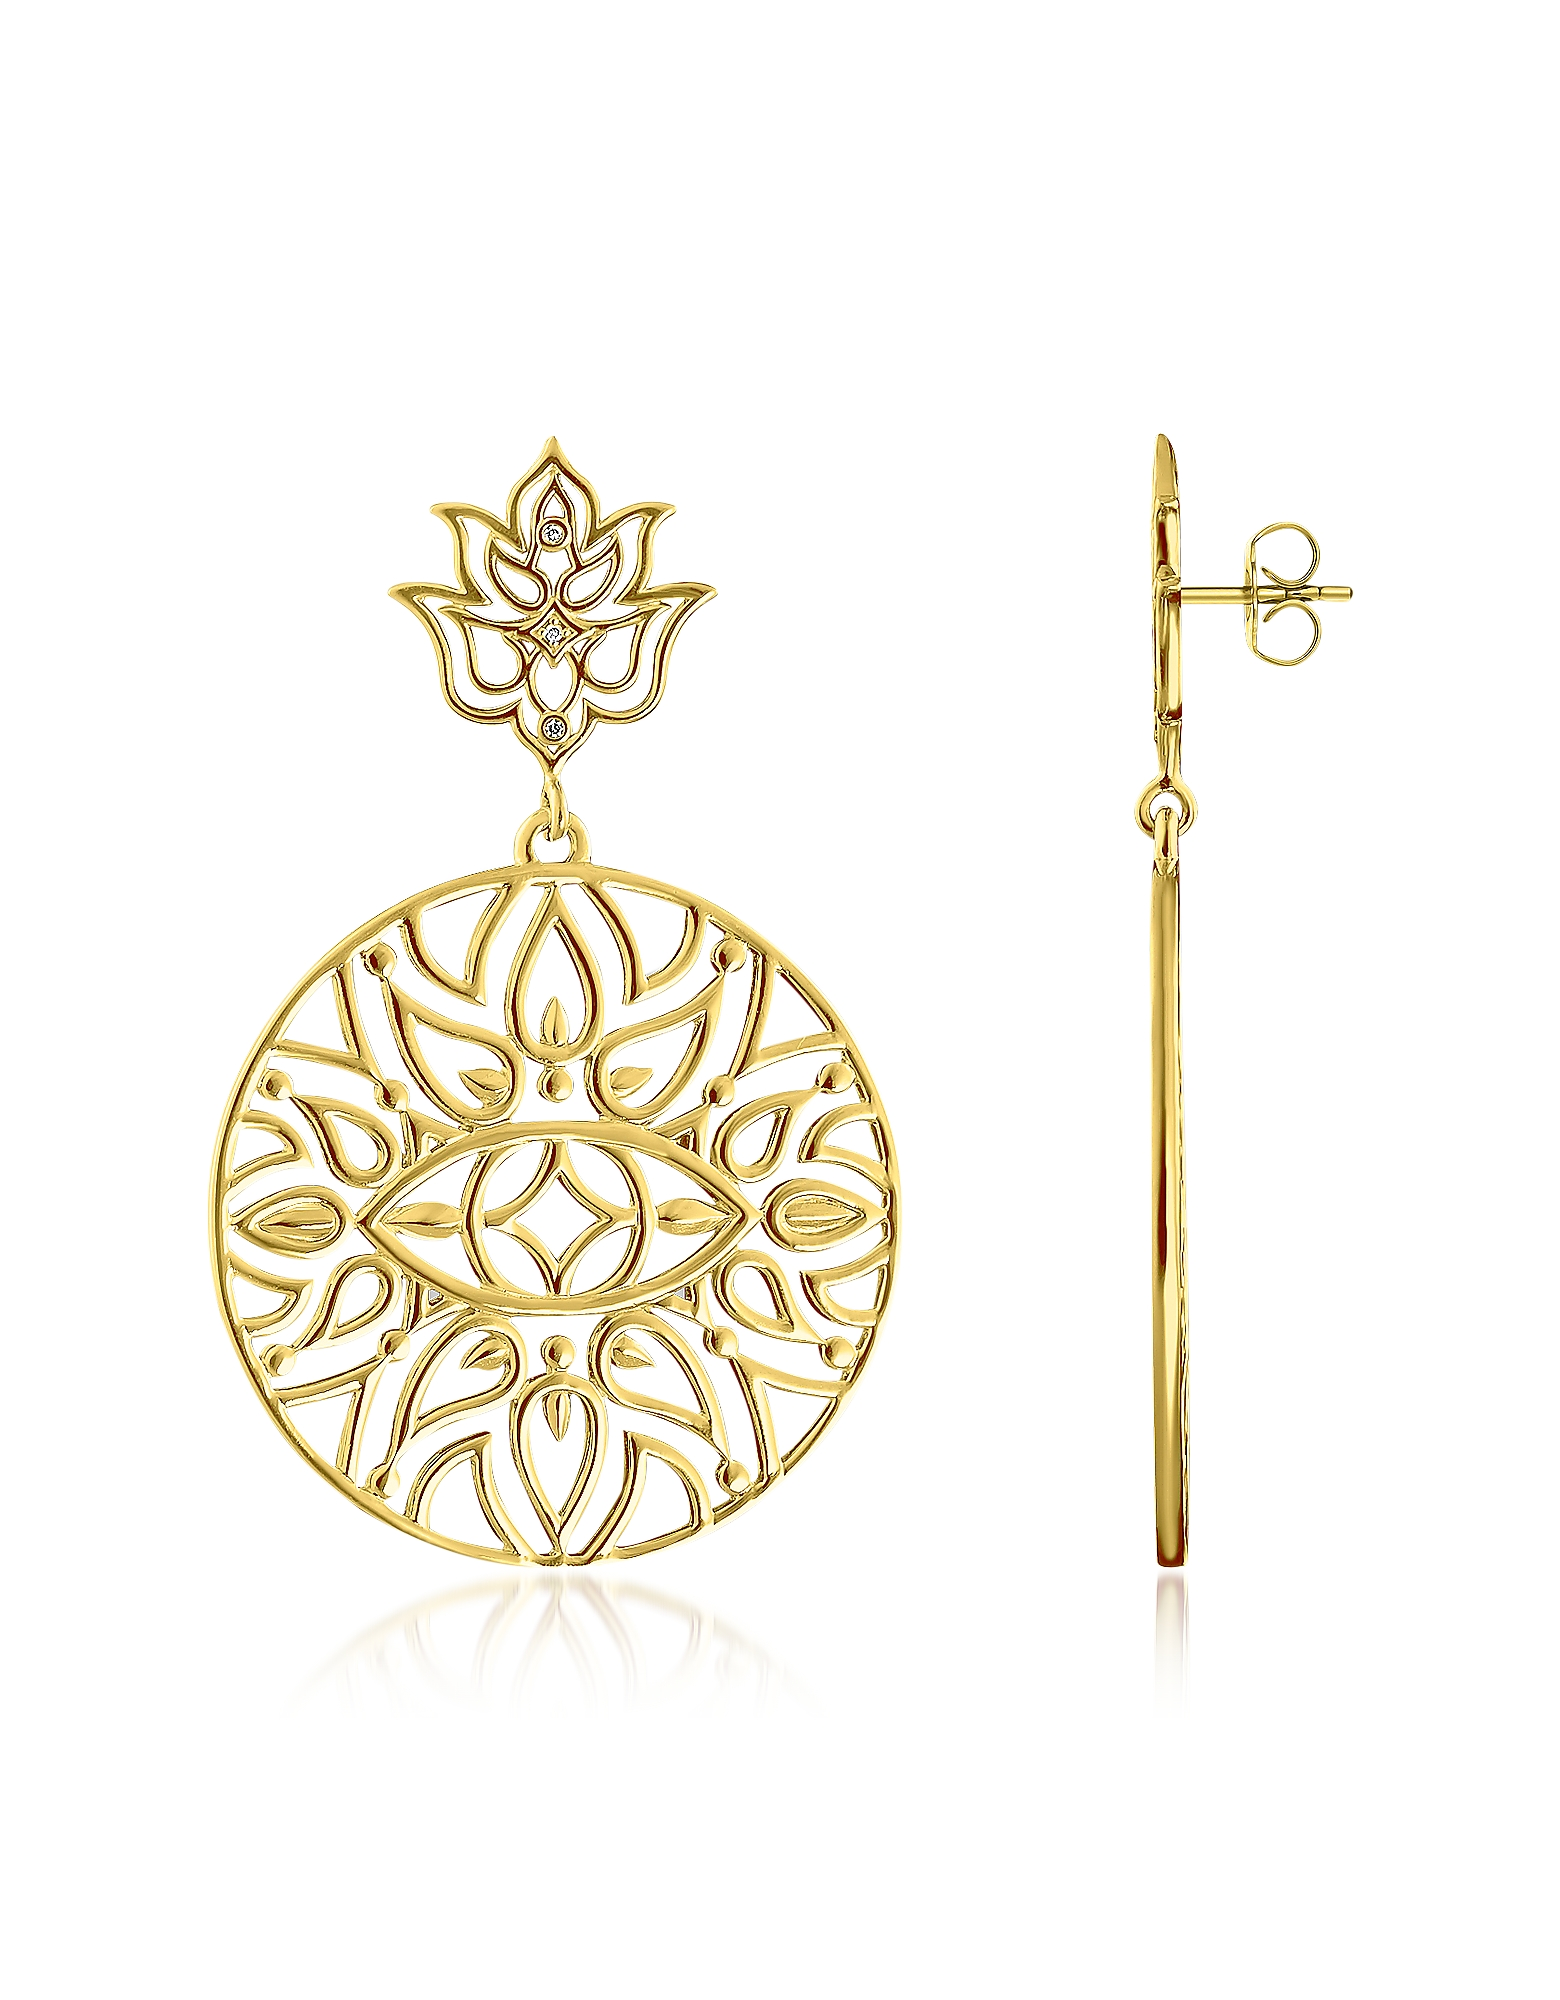 Thomas Sabo Earrings, 925 Sterling Silver & 18k Yellow Gold Plated Earrings w/White Diamond